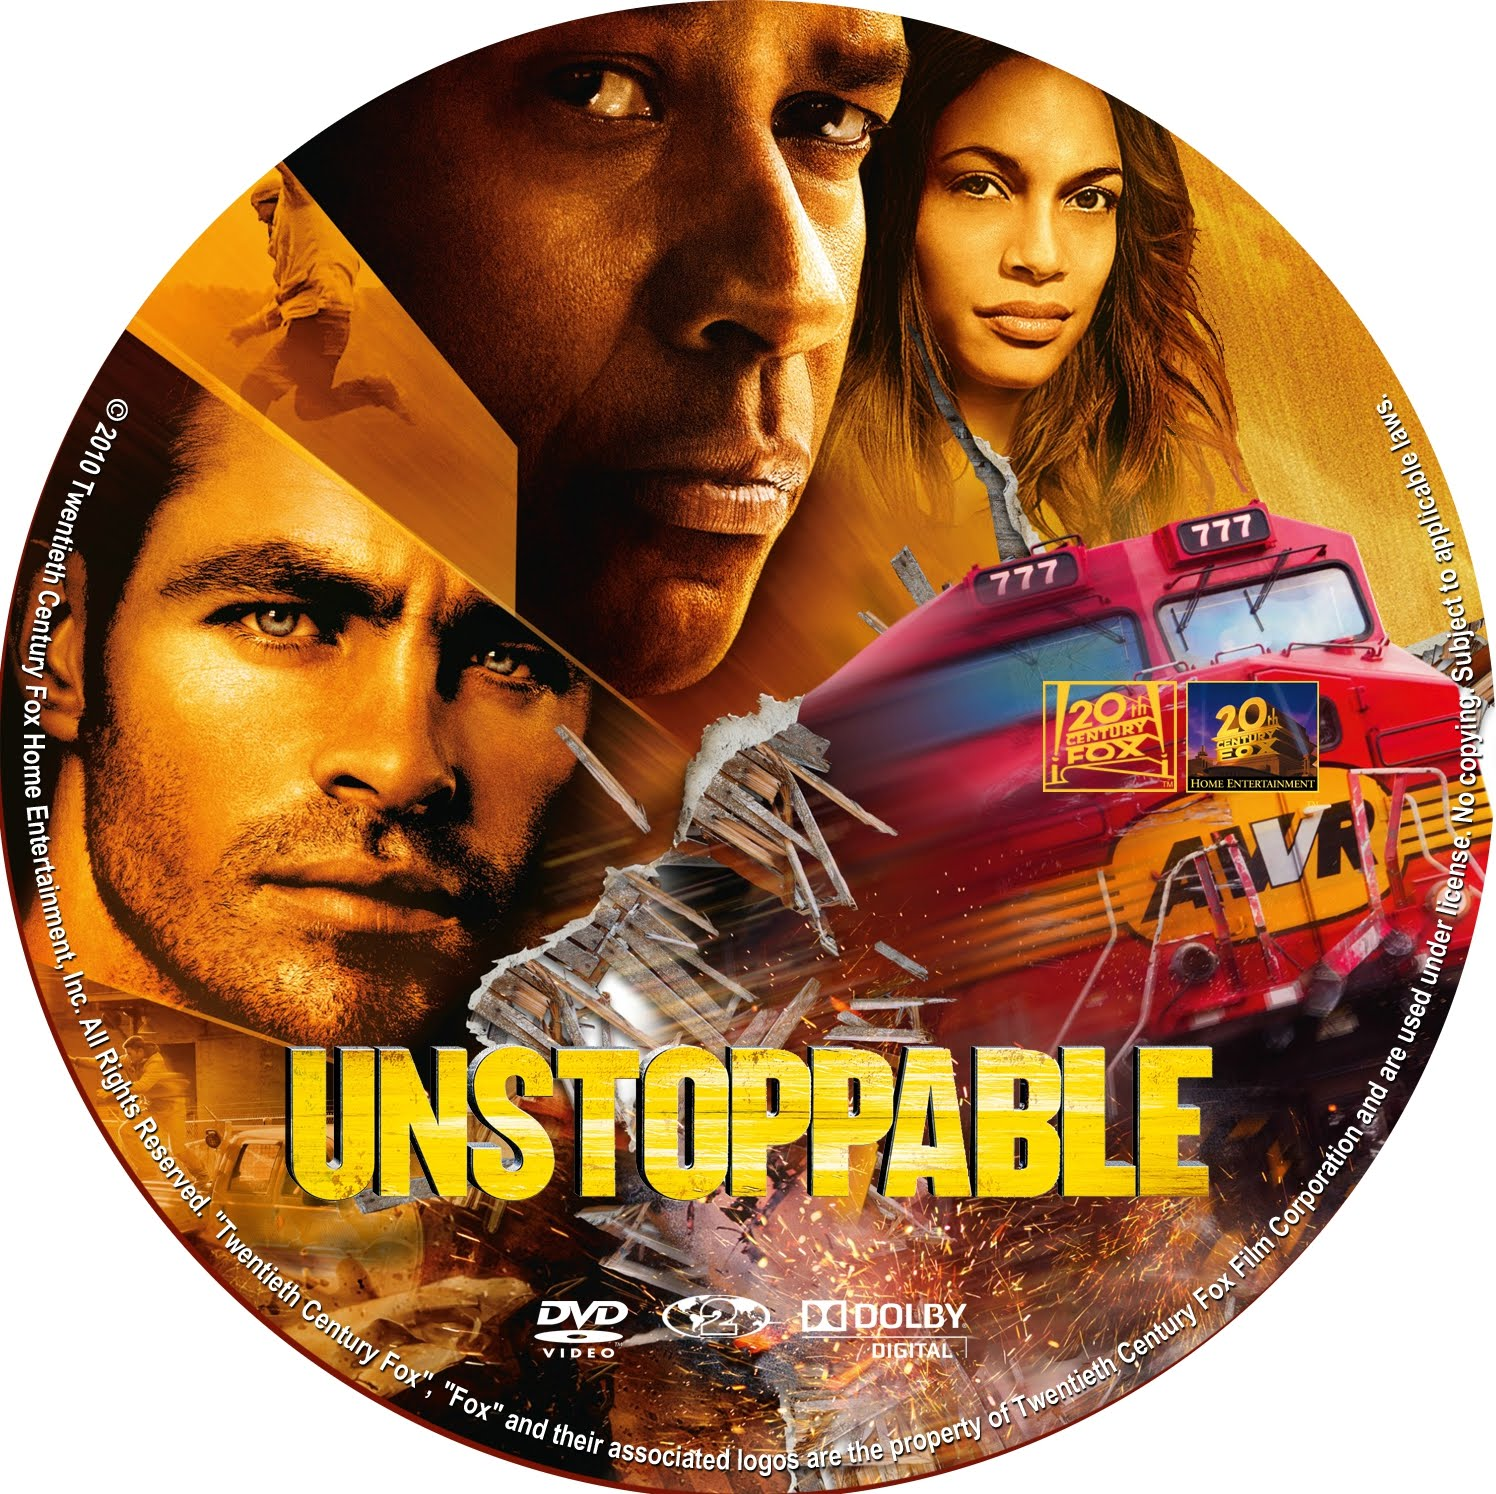 DVD COVERS AND LABELS: Unstoppable